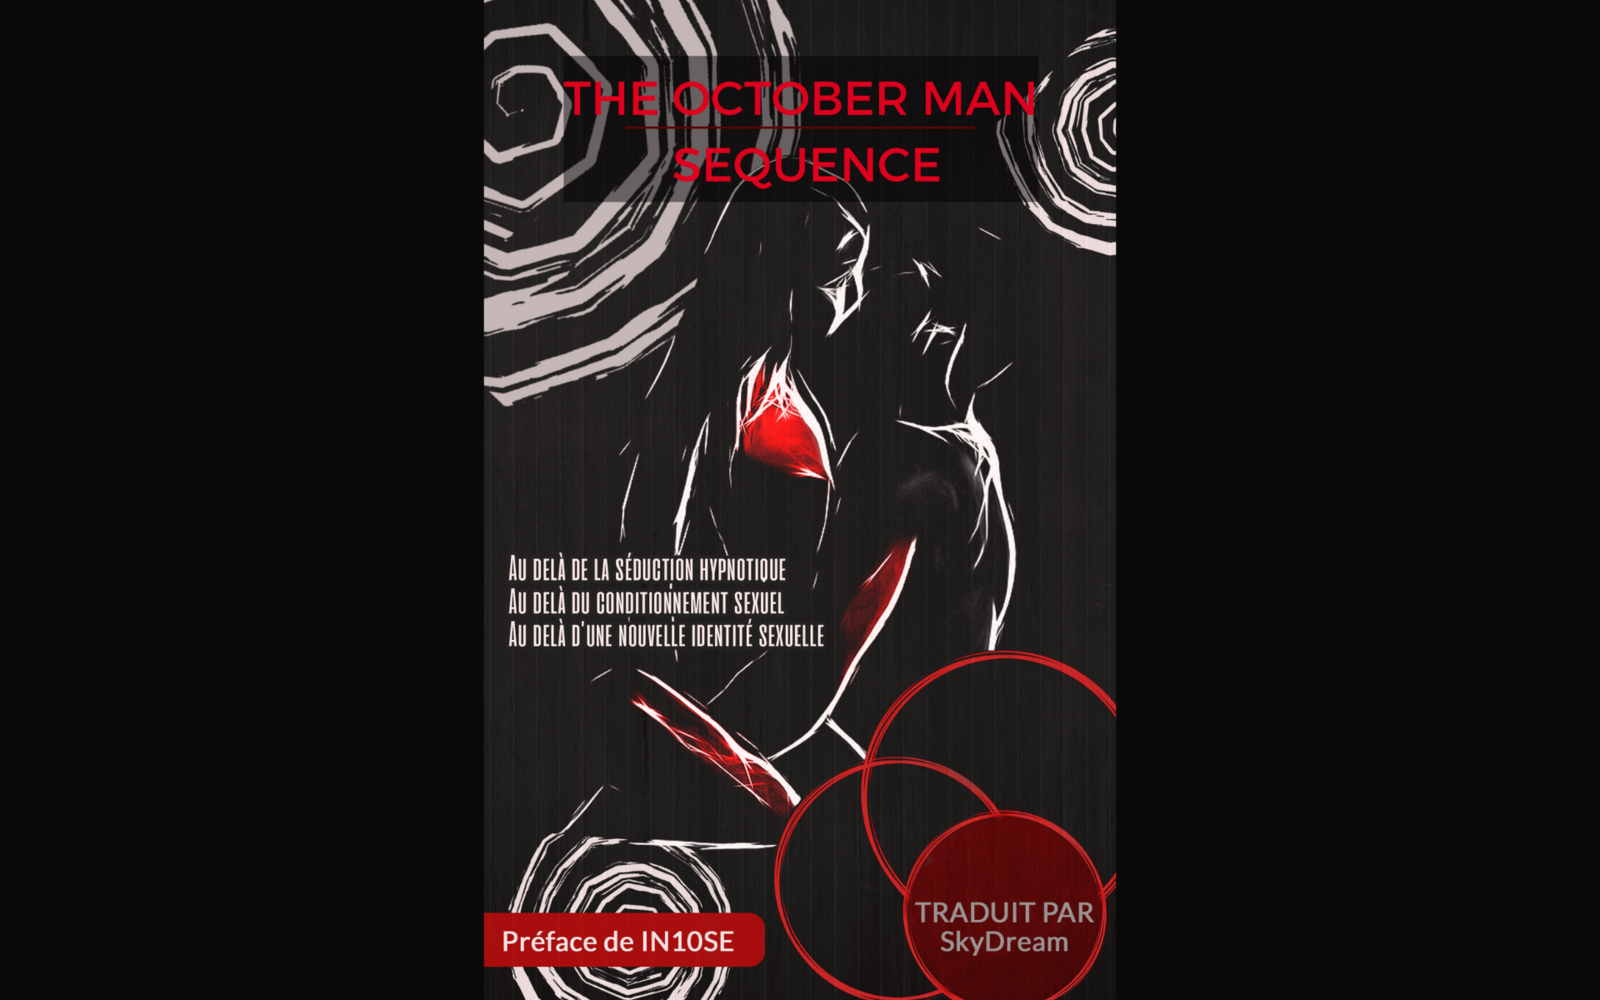 October Man Sequence (Simple Version)